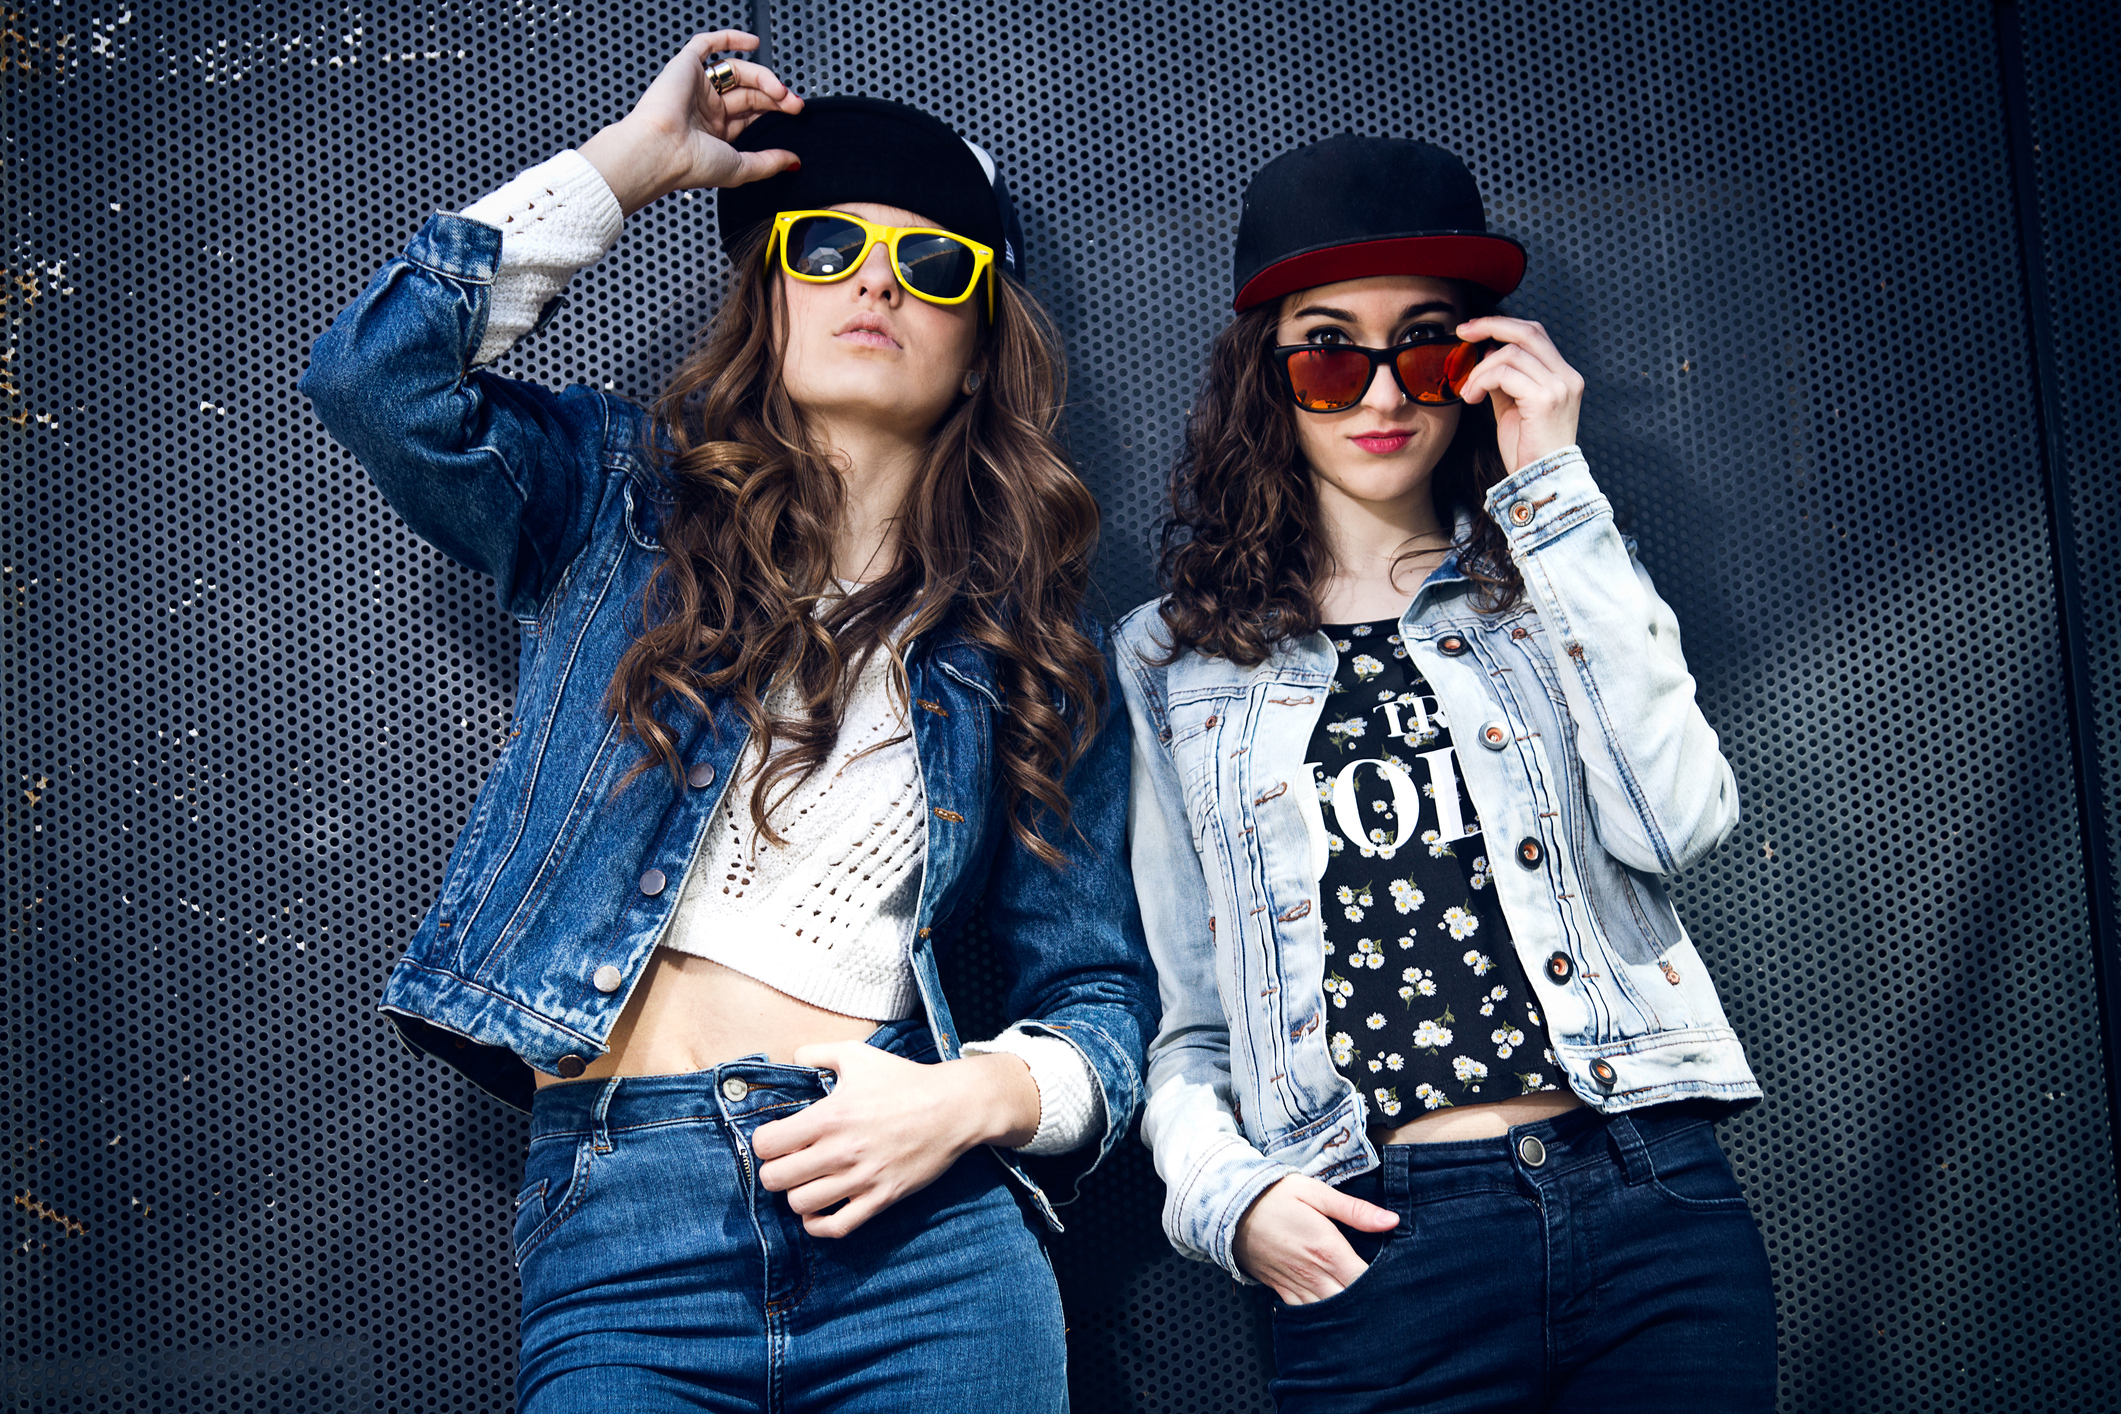 To Wow Your Friends Through Fashion, Check Out Our Tips